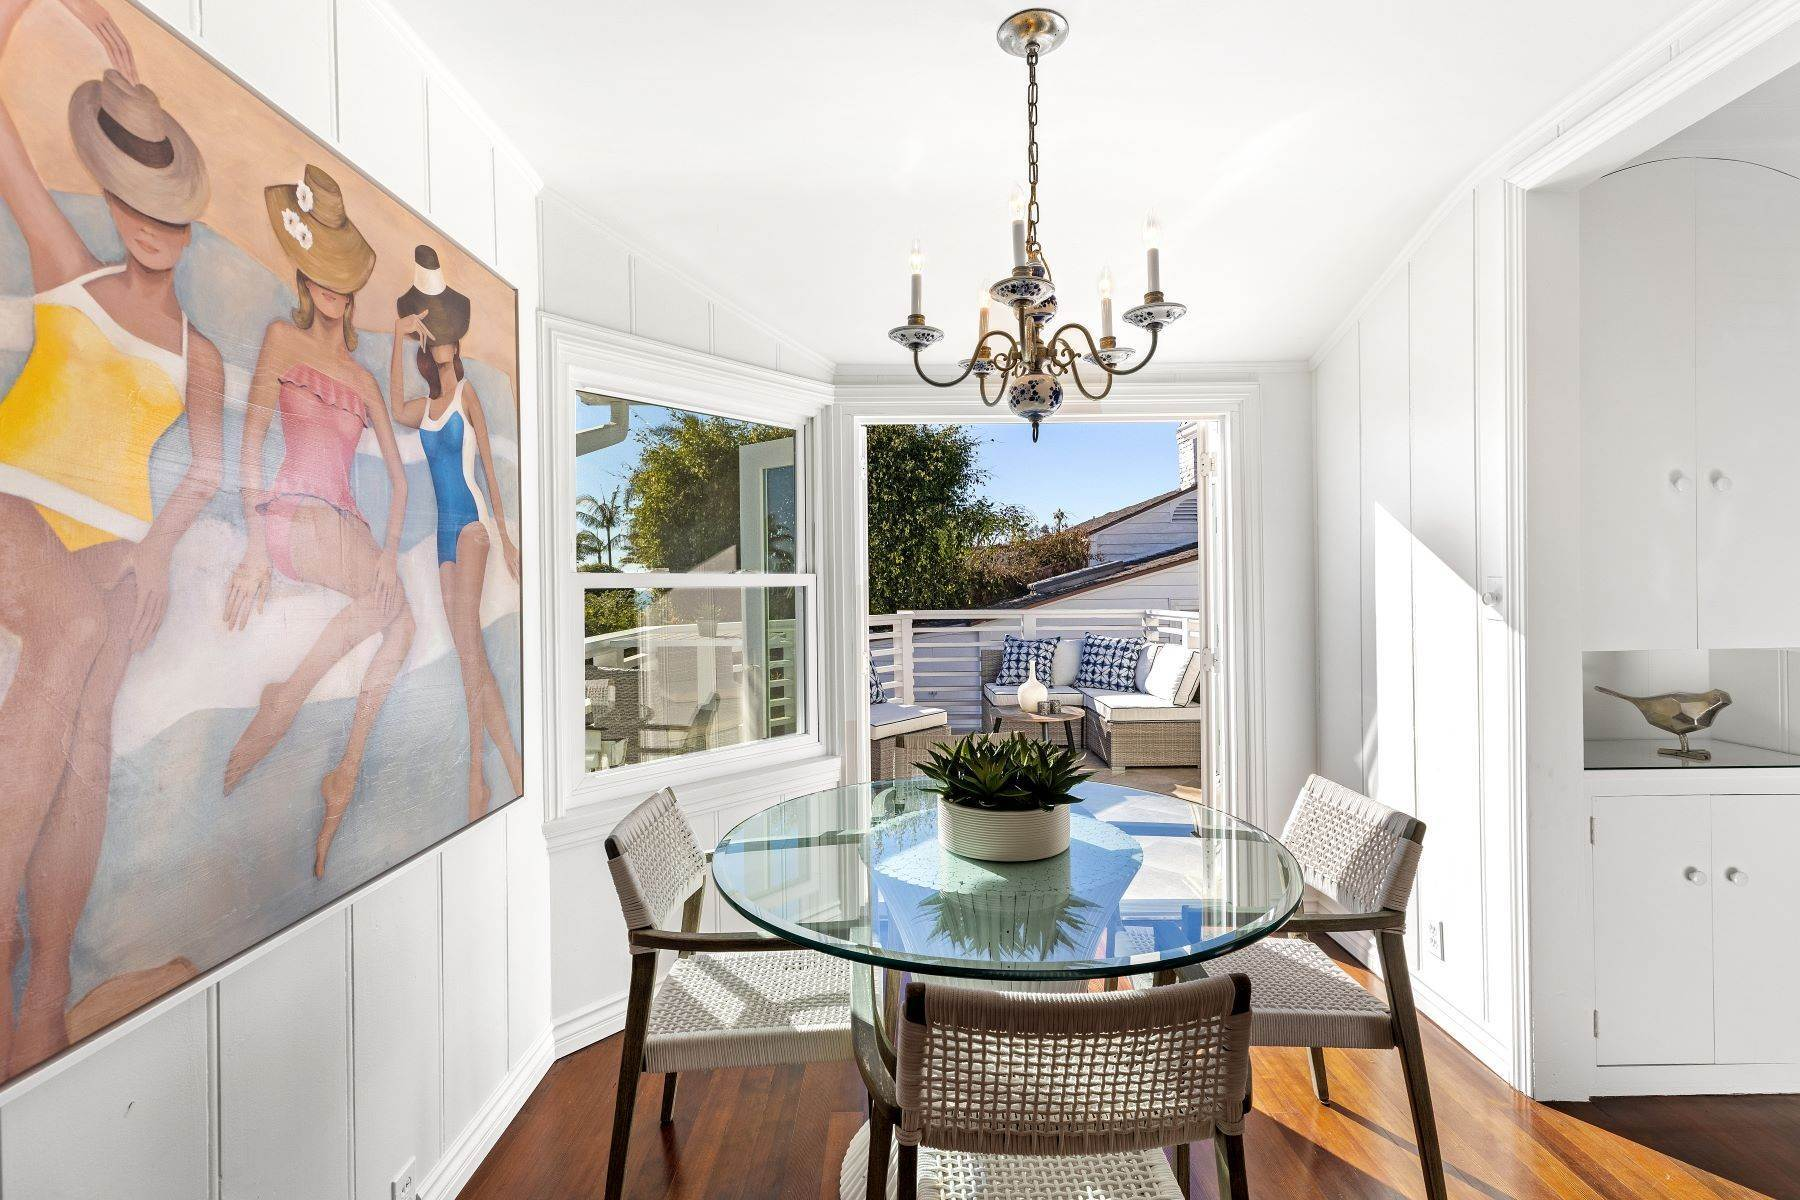 15. Single Family Homes for Sale at 24 South Portola, Laguna Beach, CA 92651 24 South Portola Laguna Beach, California 92651 United States